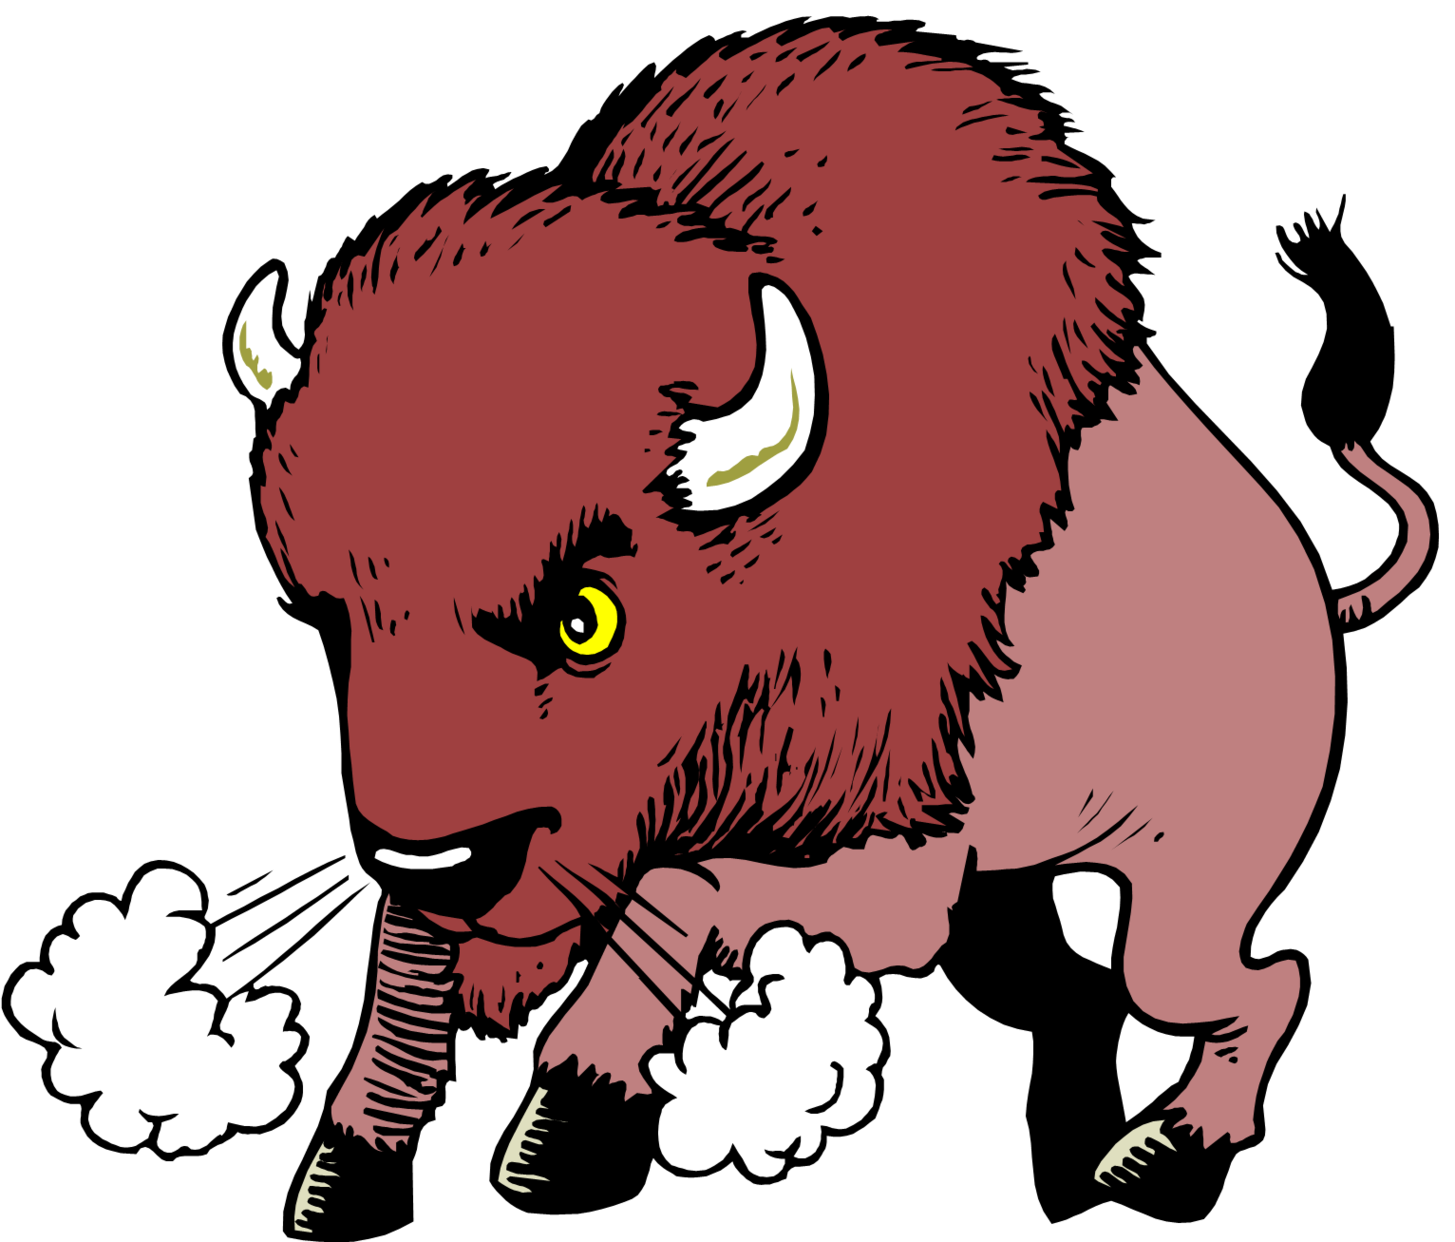 Bison clipart angry, Bison angry Transparent FREE for.